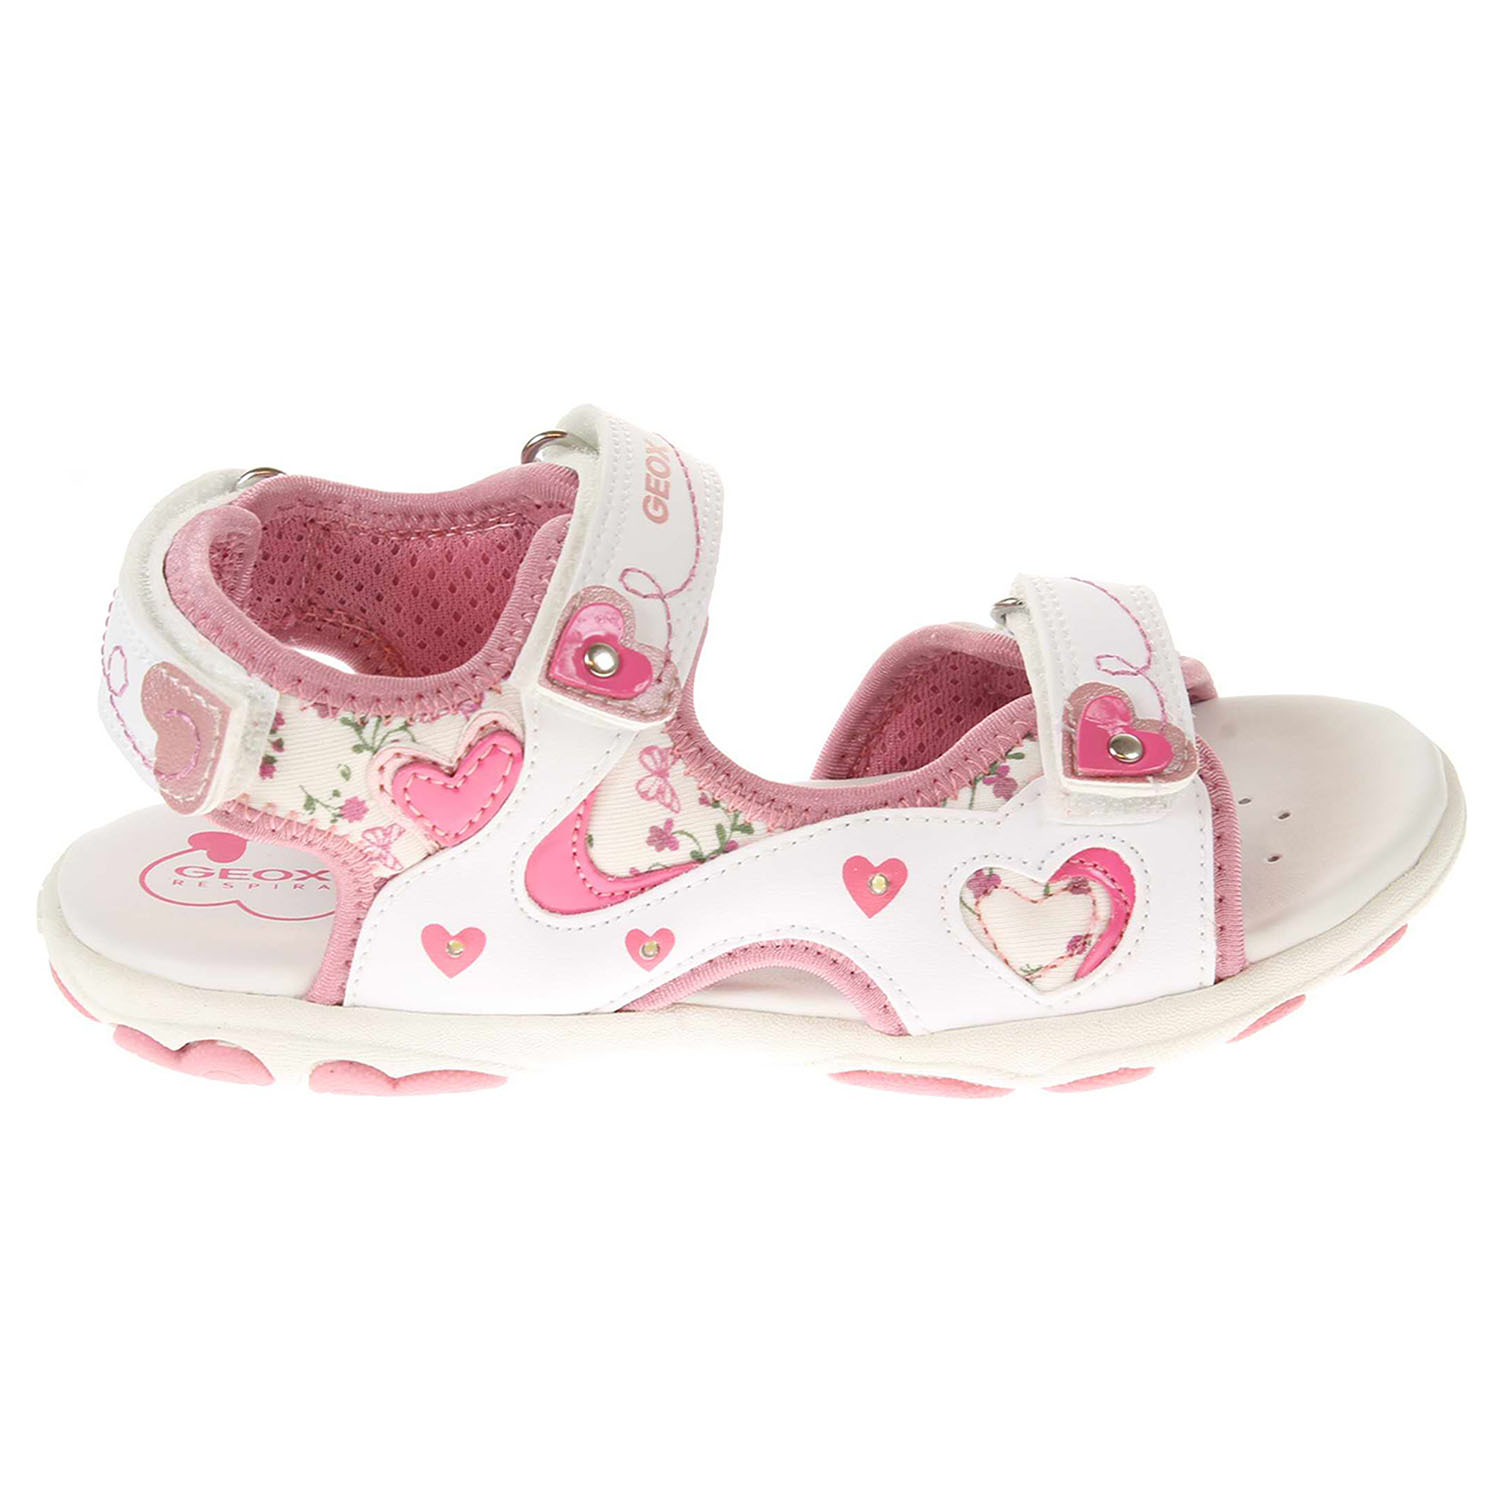 Geox Cuore white / pink